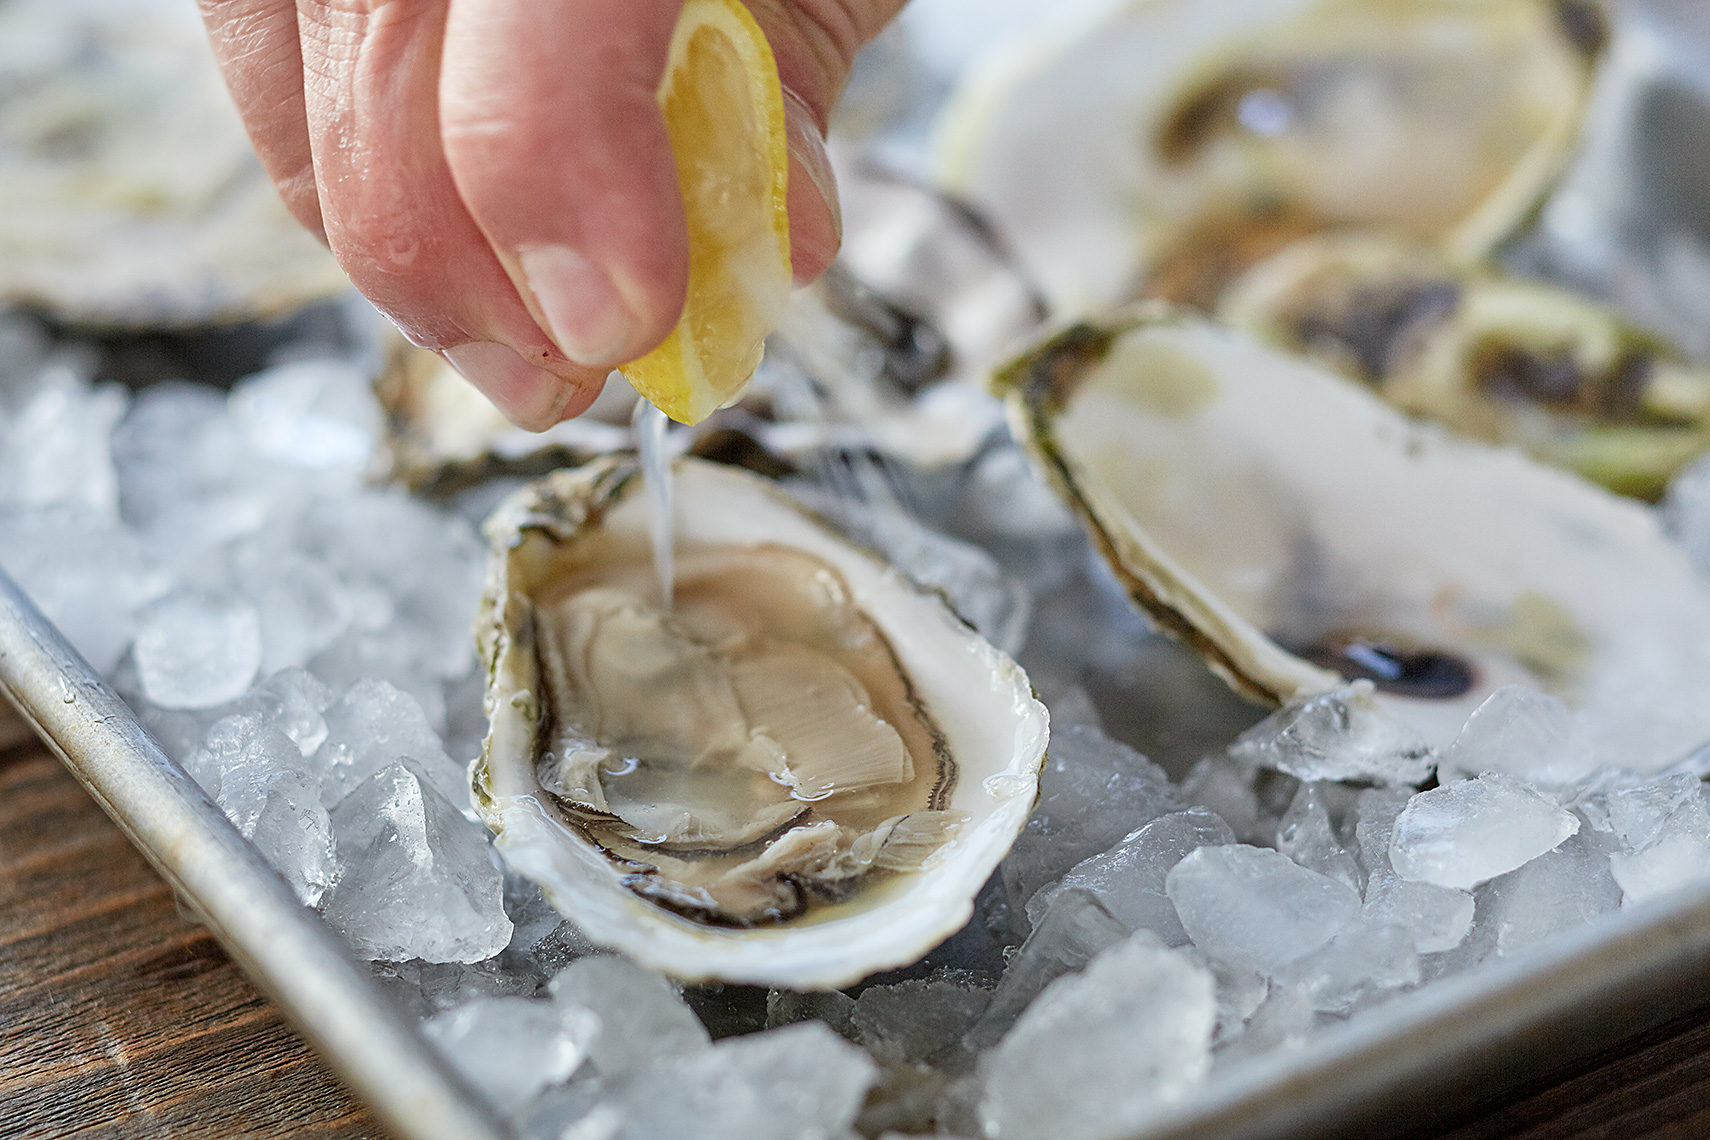 Squeezing lemon on a plate of oysters